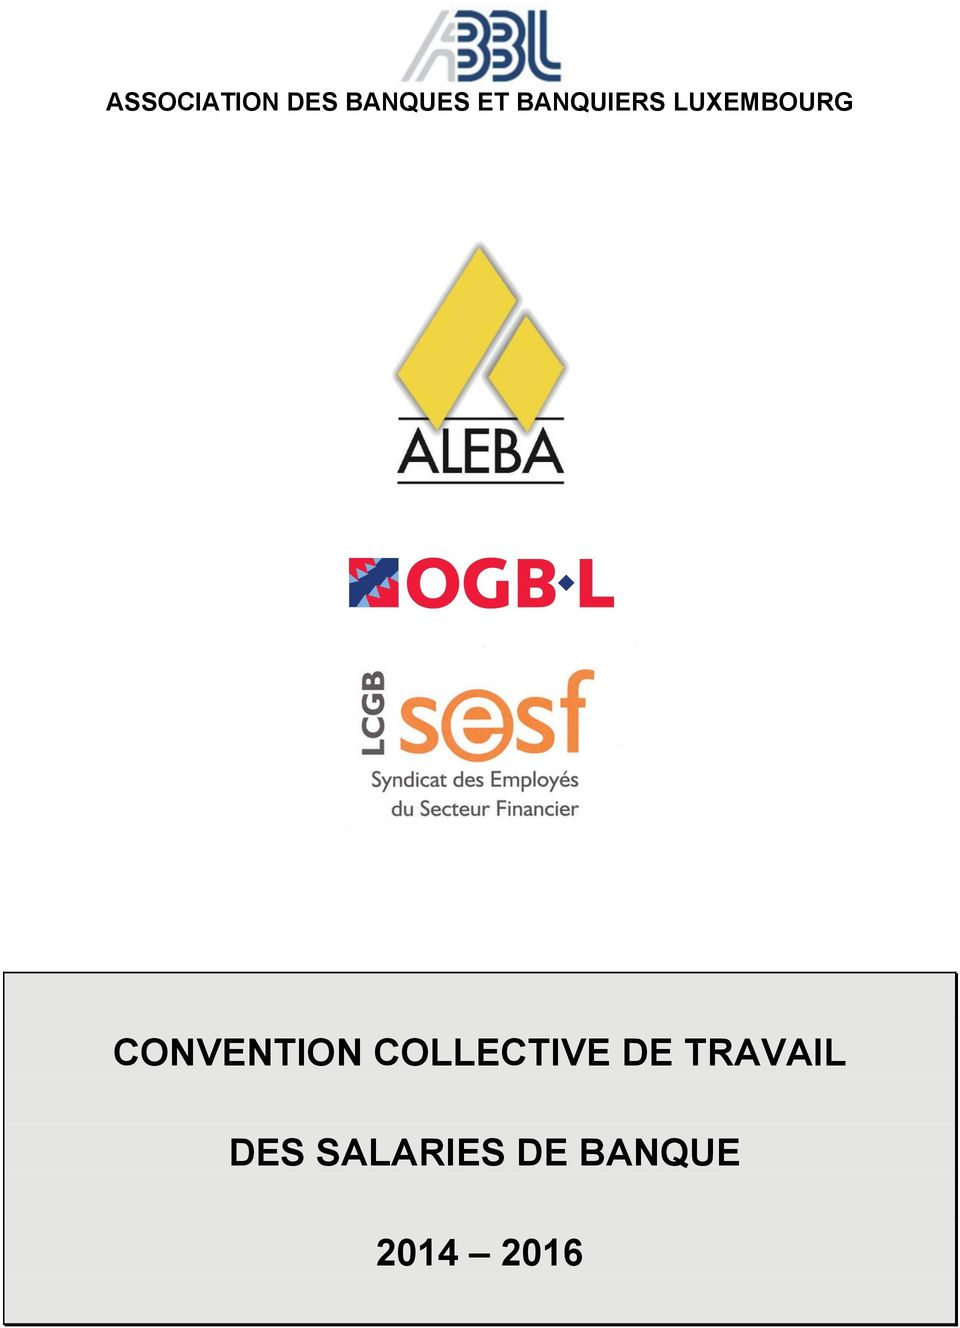 CONVENTION COLLECTIVE DE